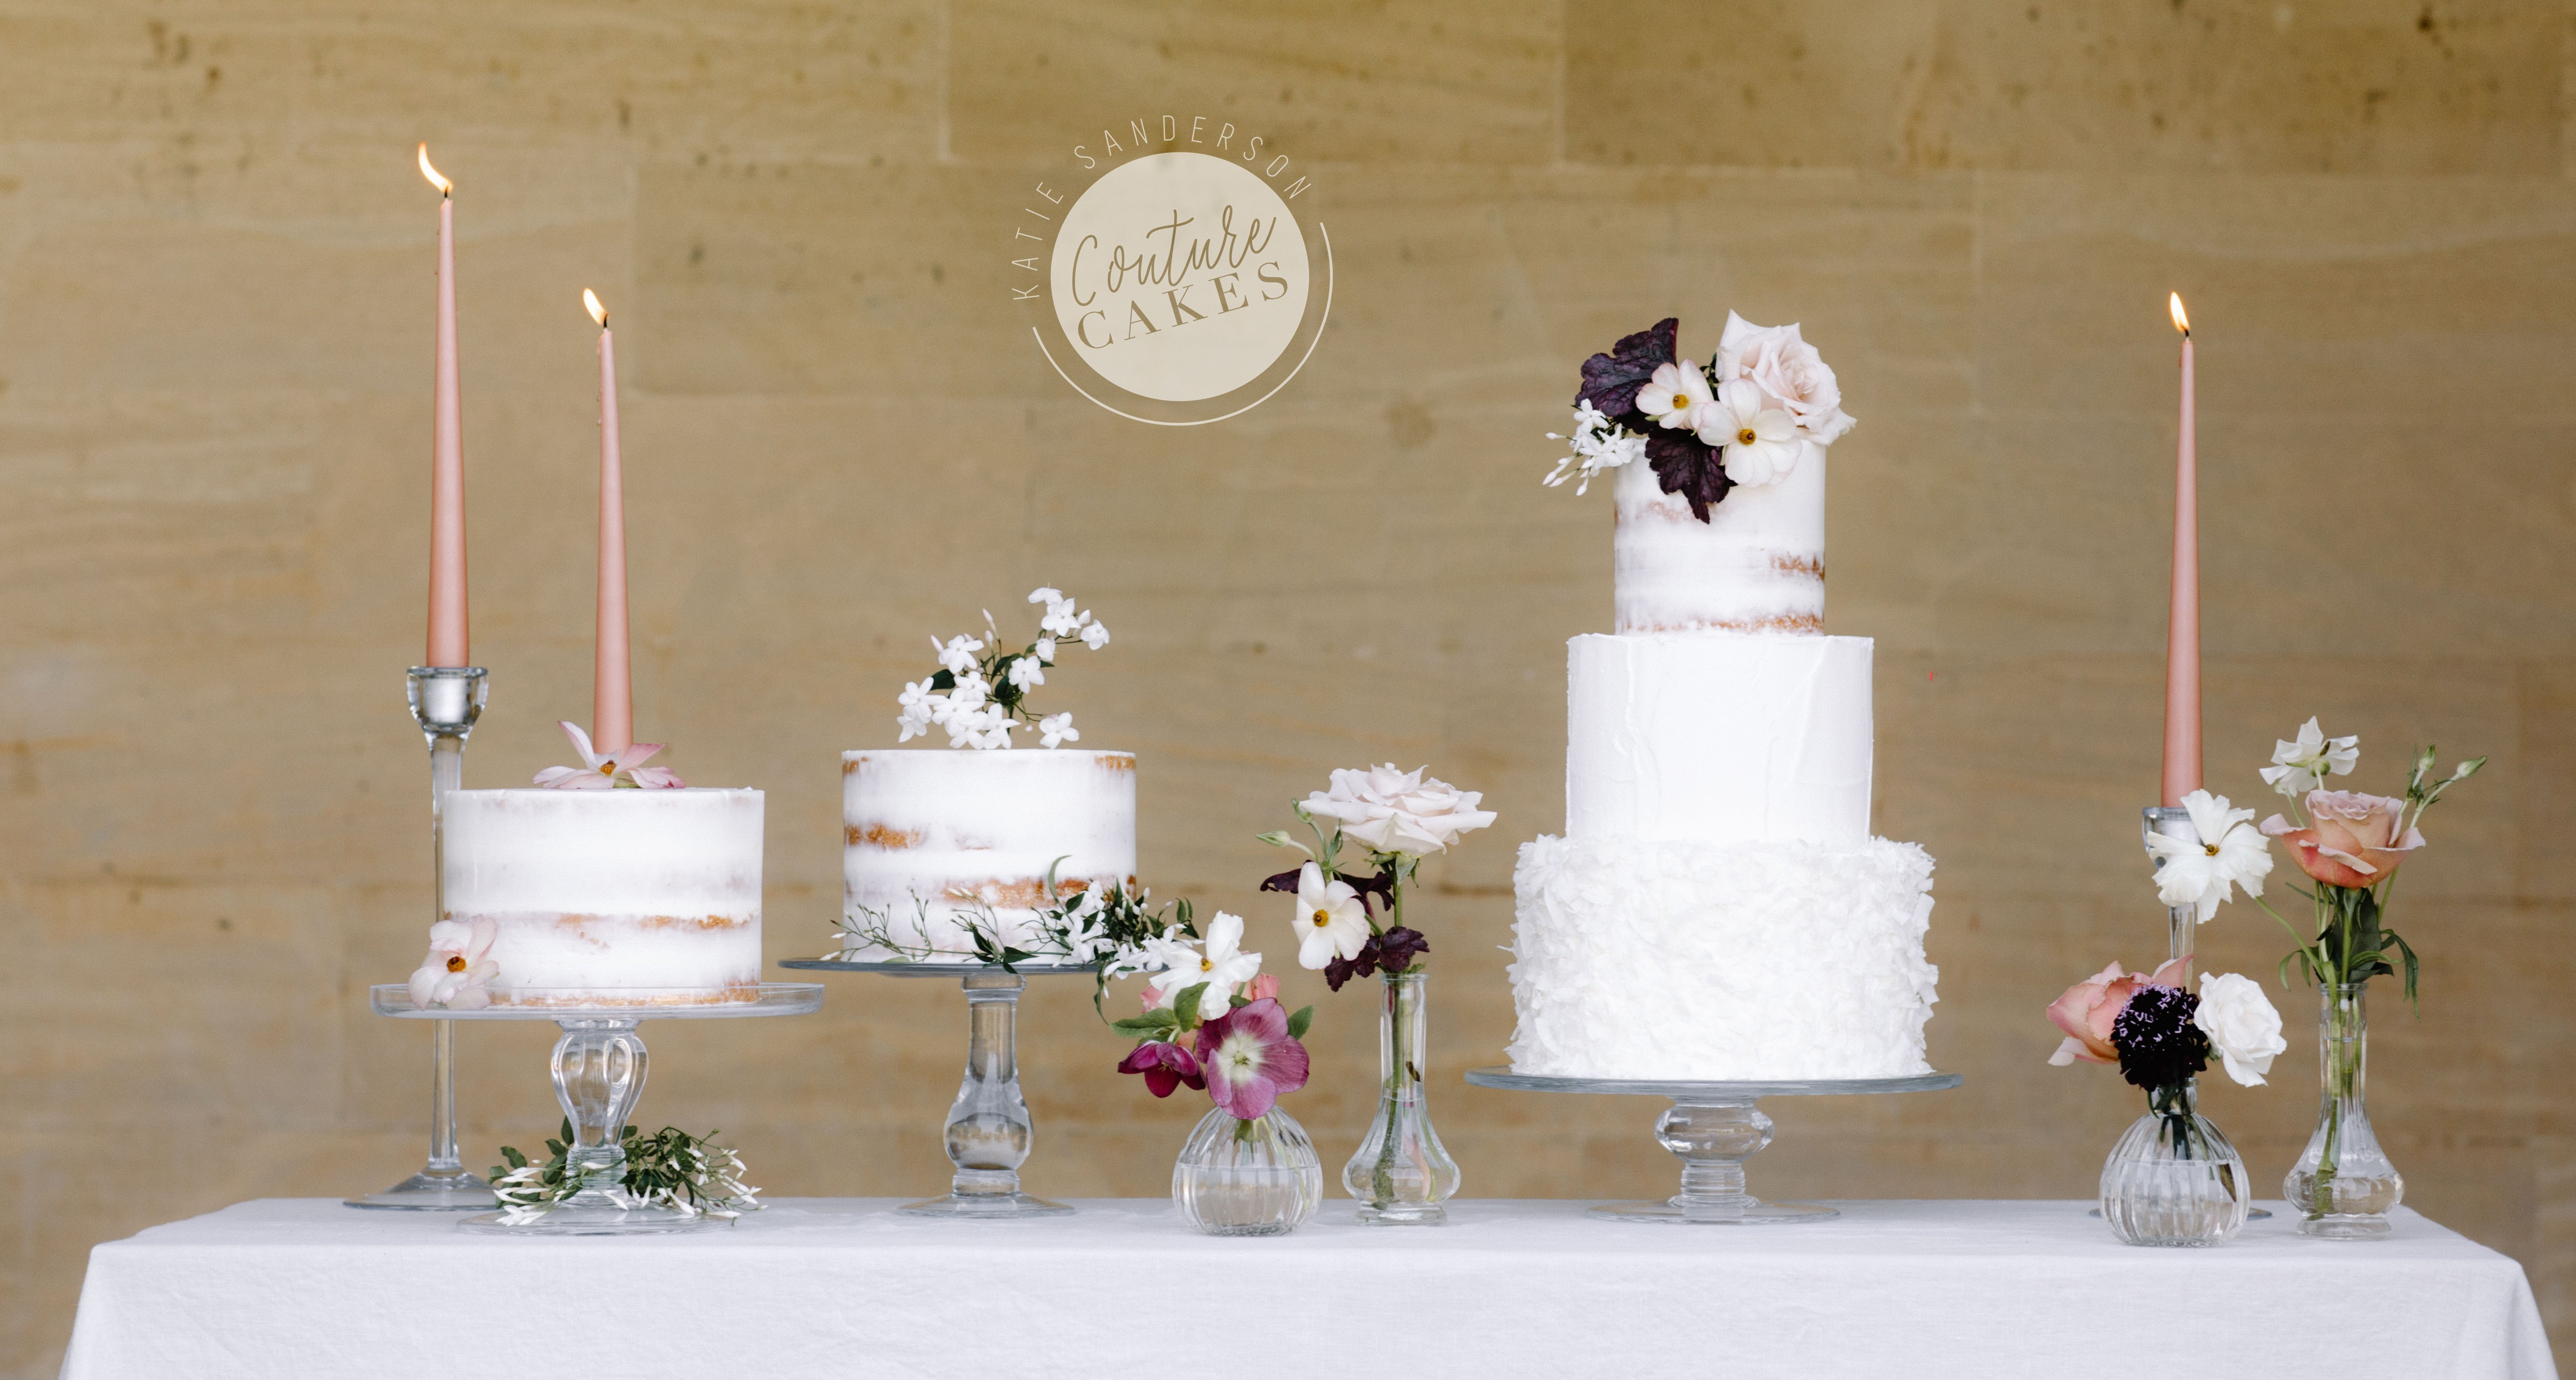 Main Cake serves 100 portions  £341, smaller cakes serve 40 portions each £85 each excl flowers